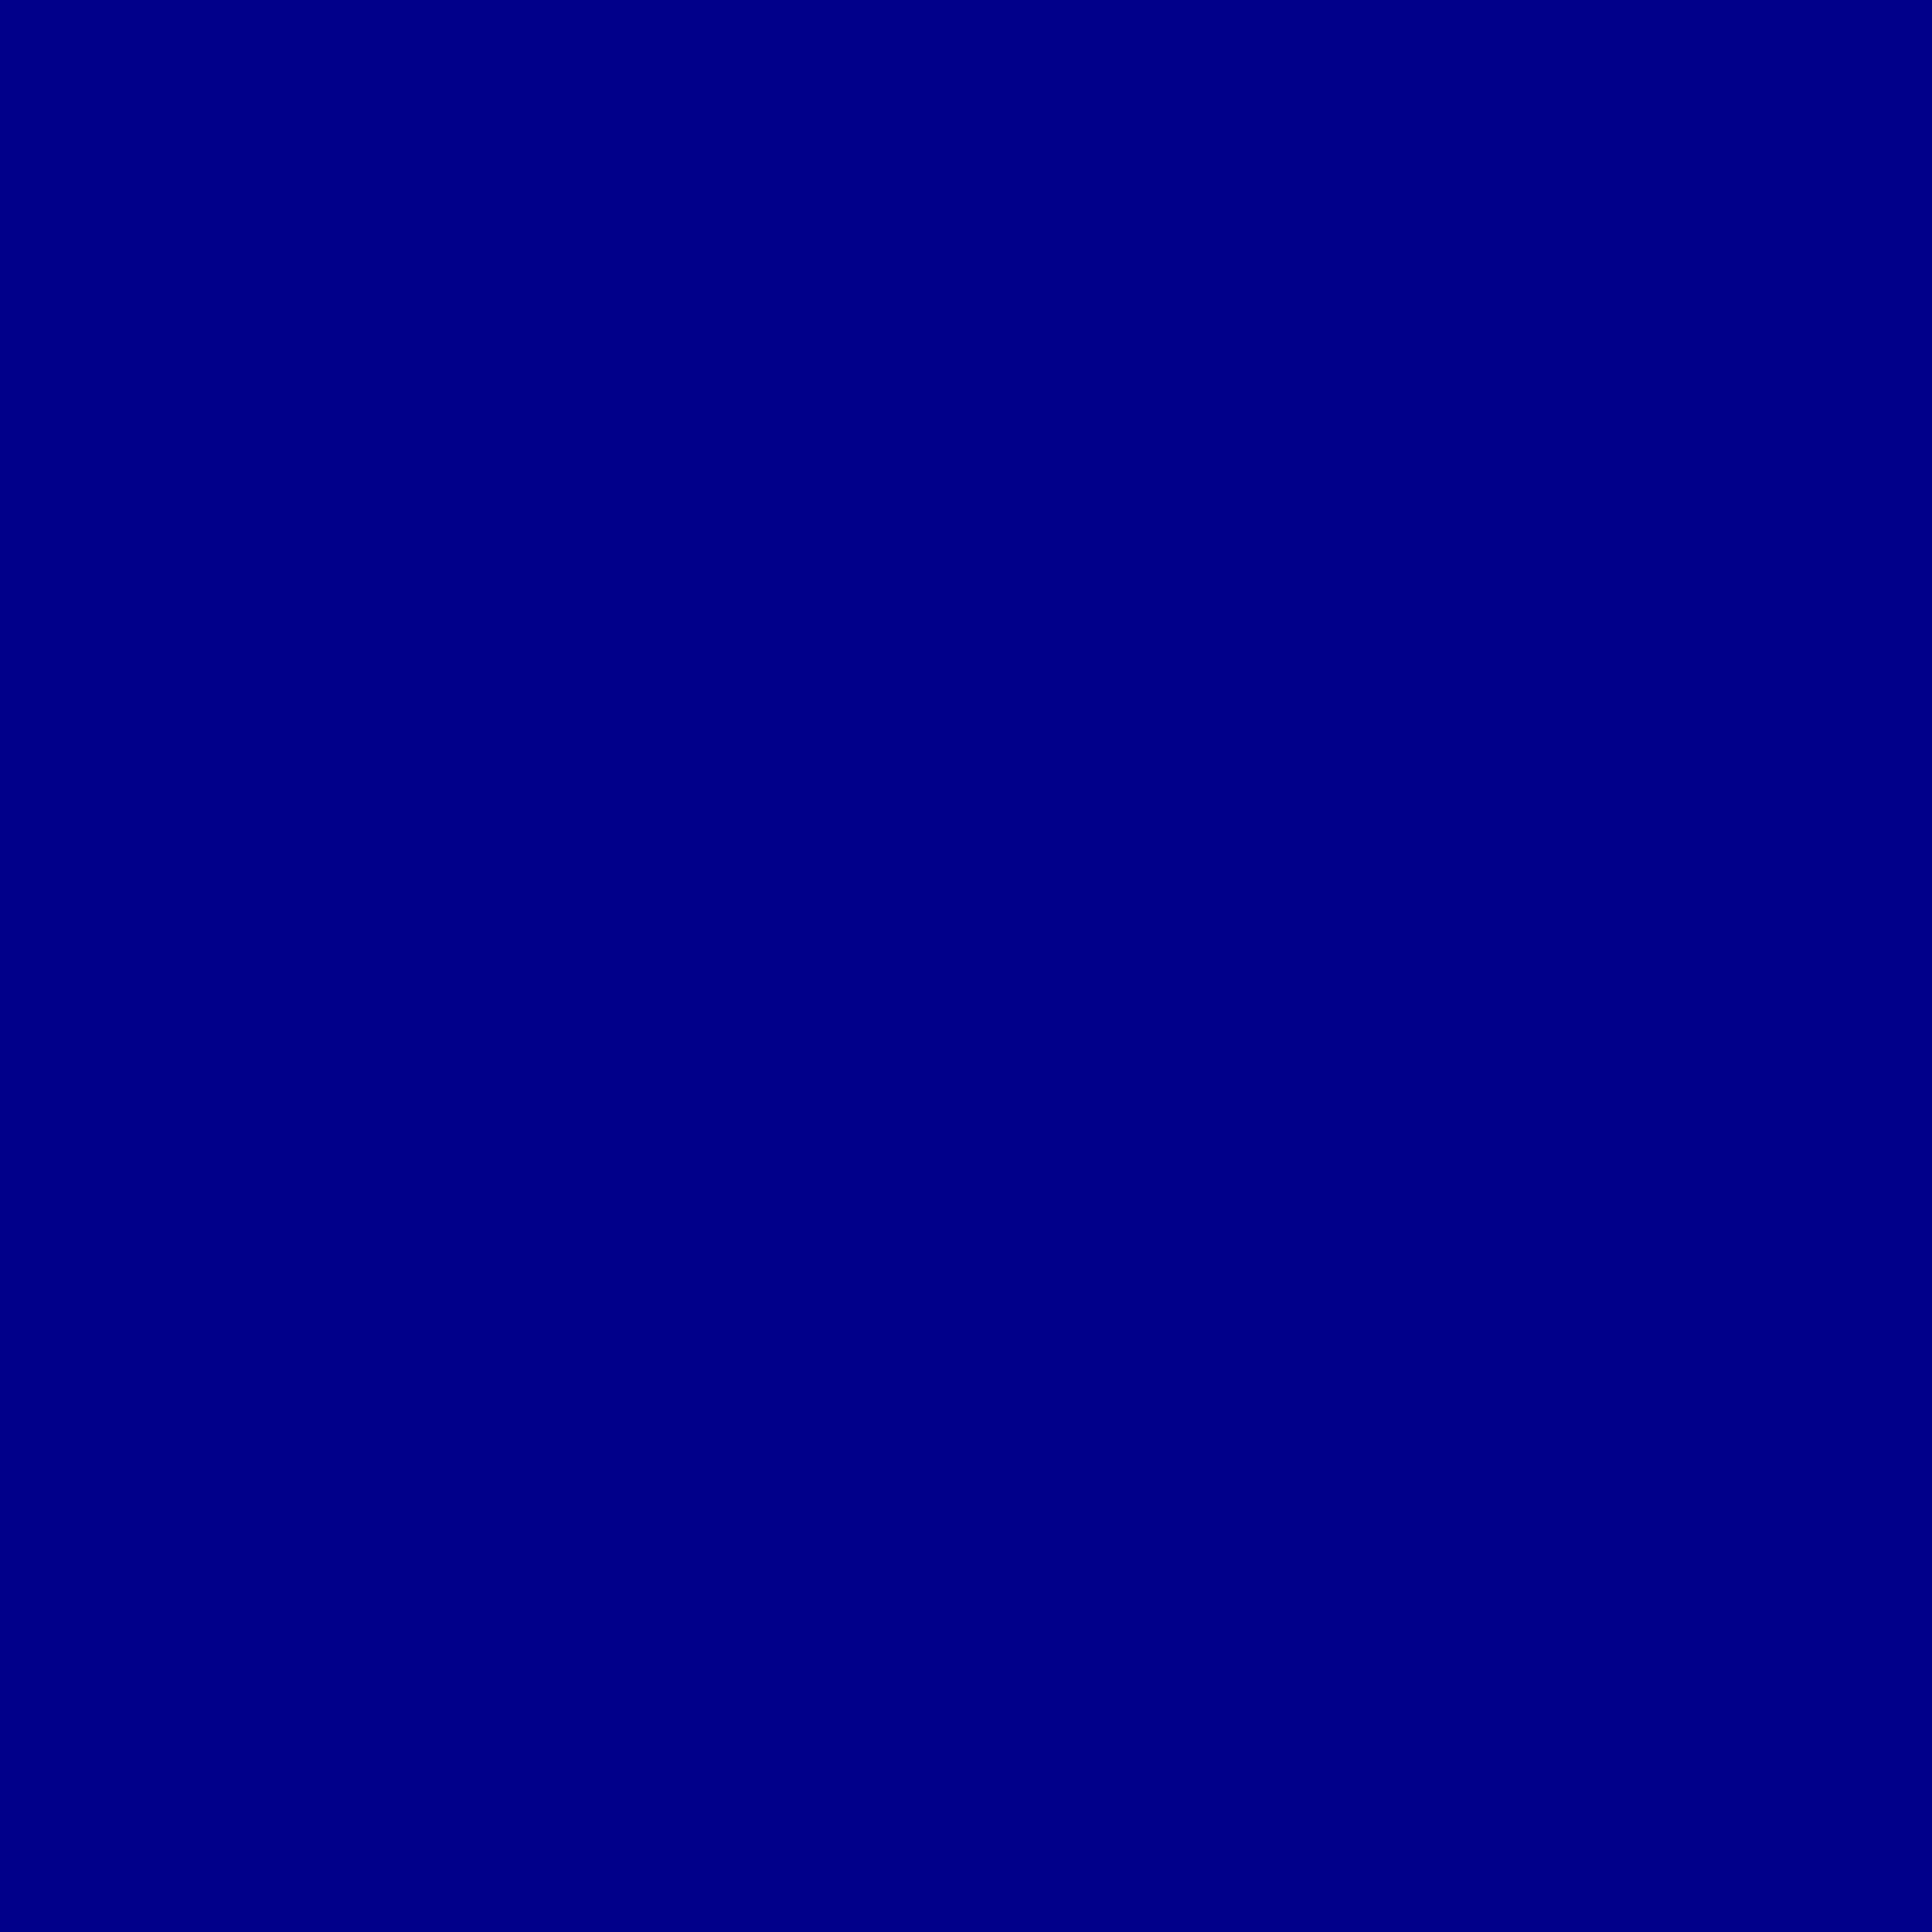 Blue solid color background view and download the below background 2048x2048